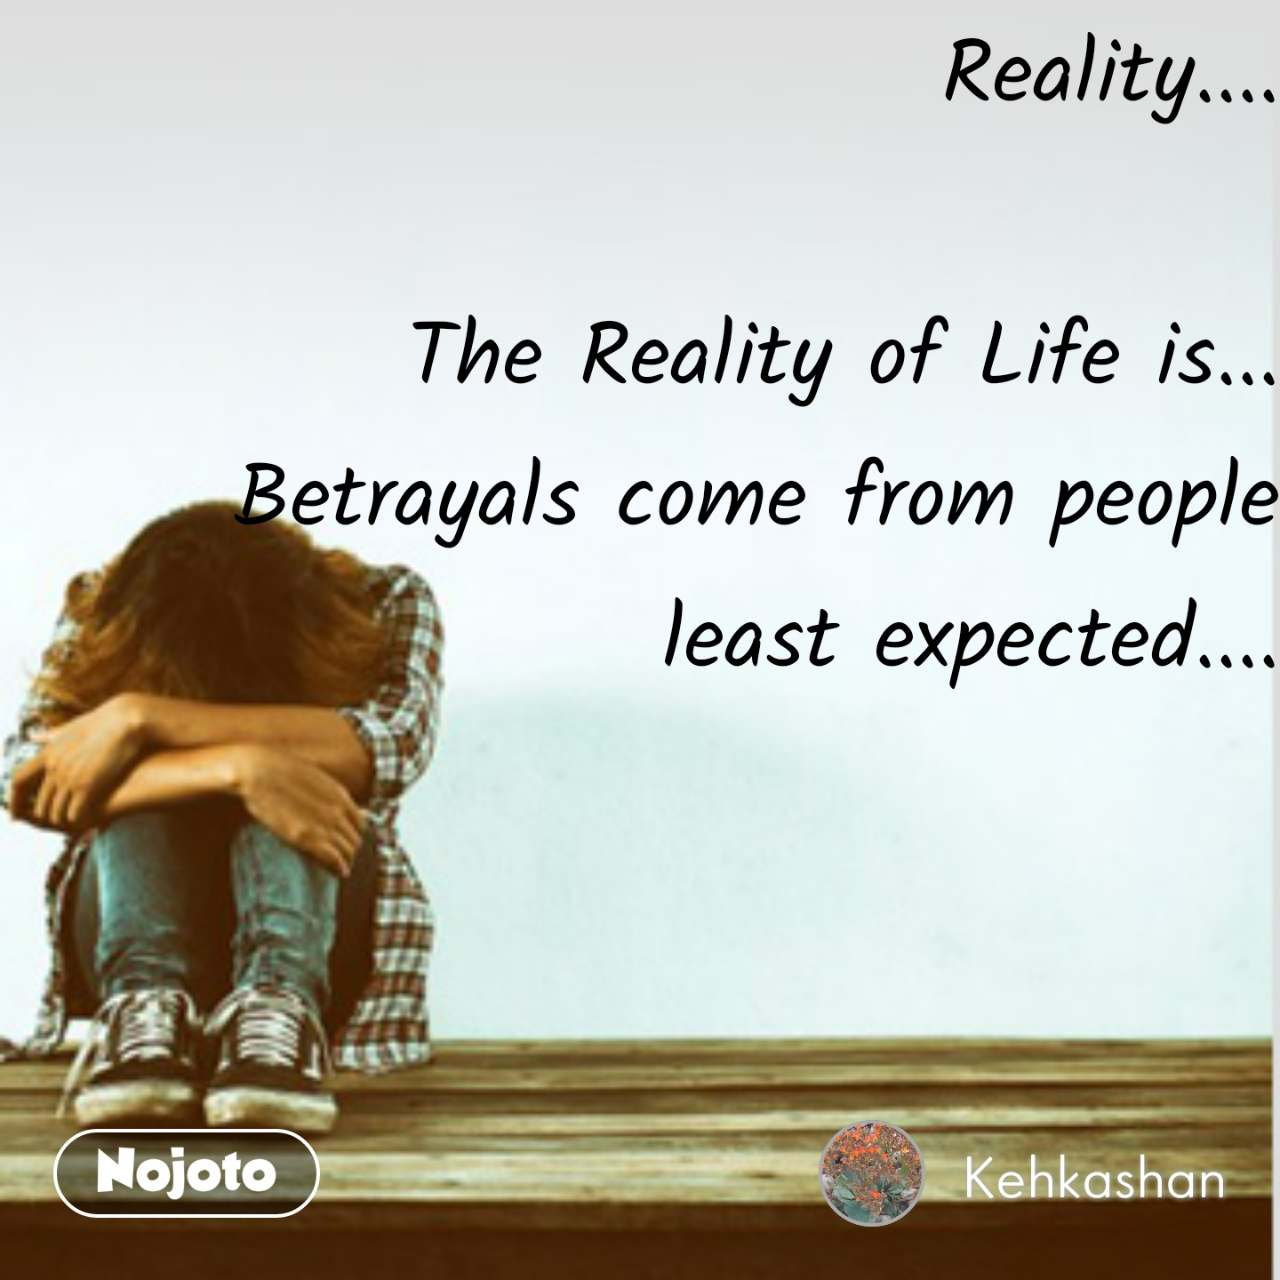 Reality....  The Reality of Life is... Betrayals come from people least expected....